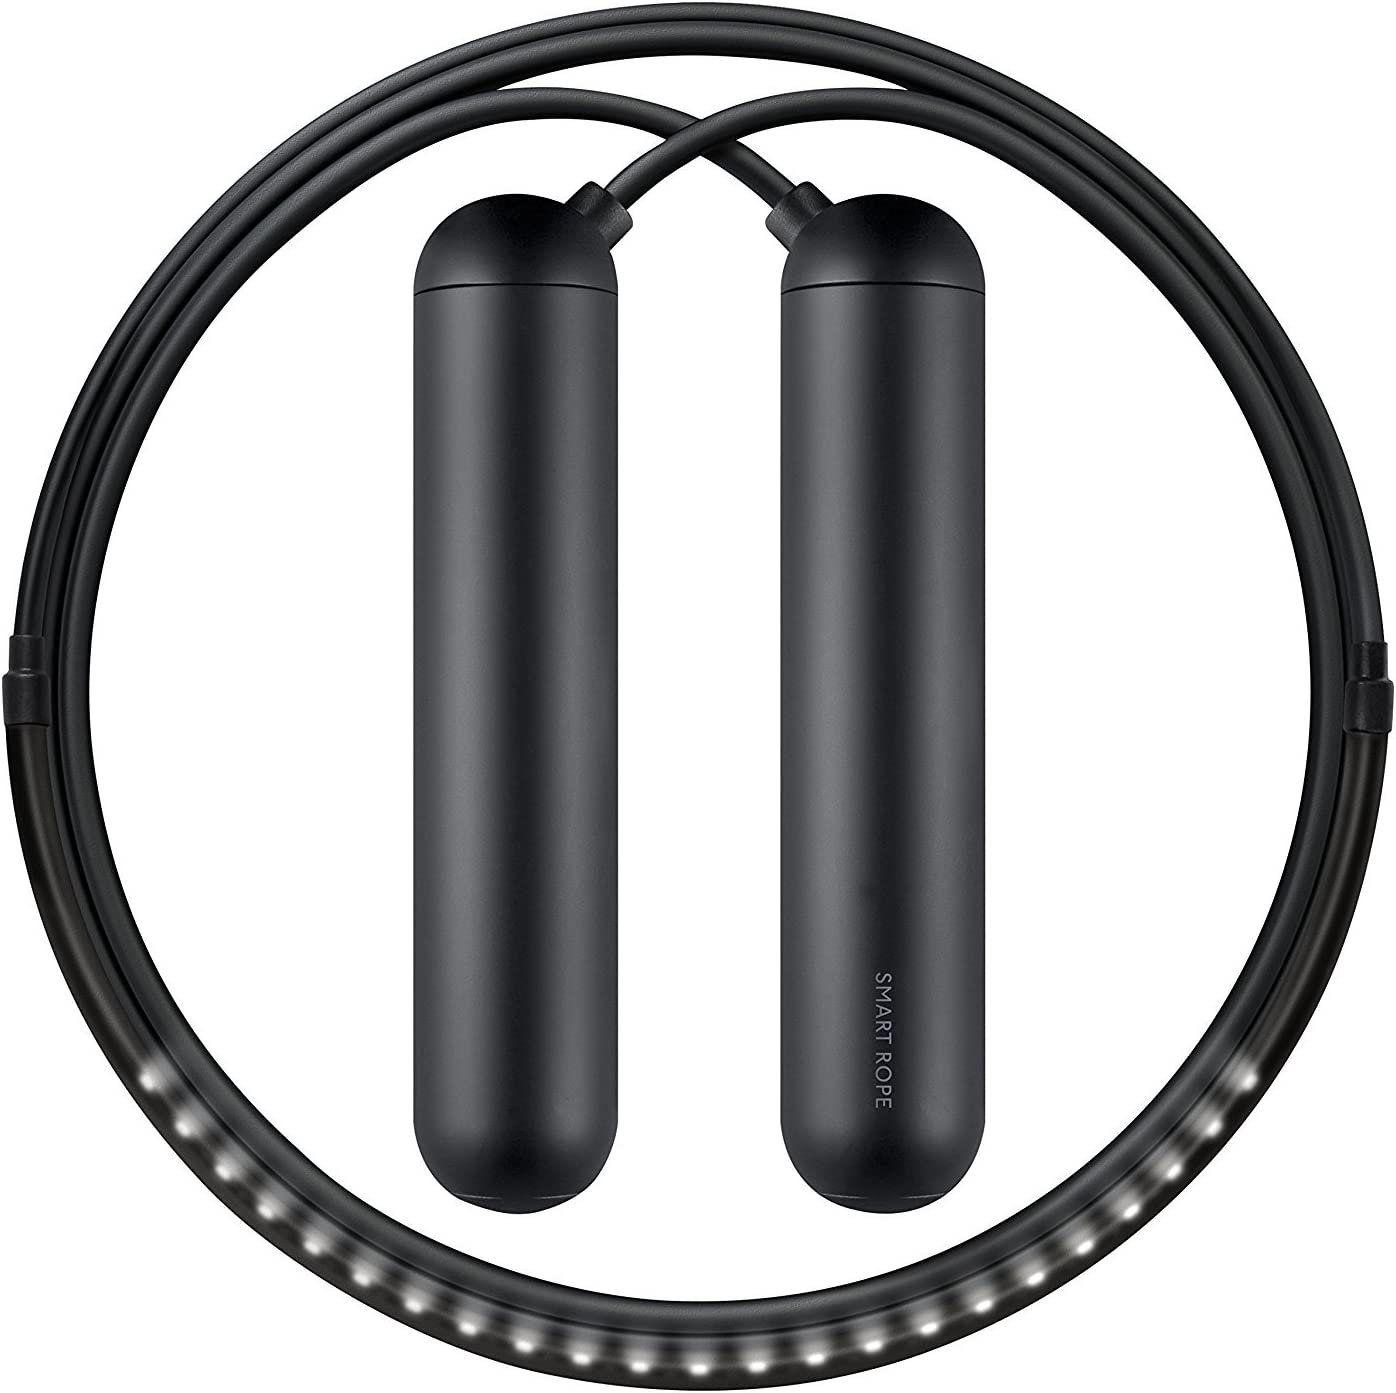 Best Jump Ropes For Losing Weight